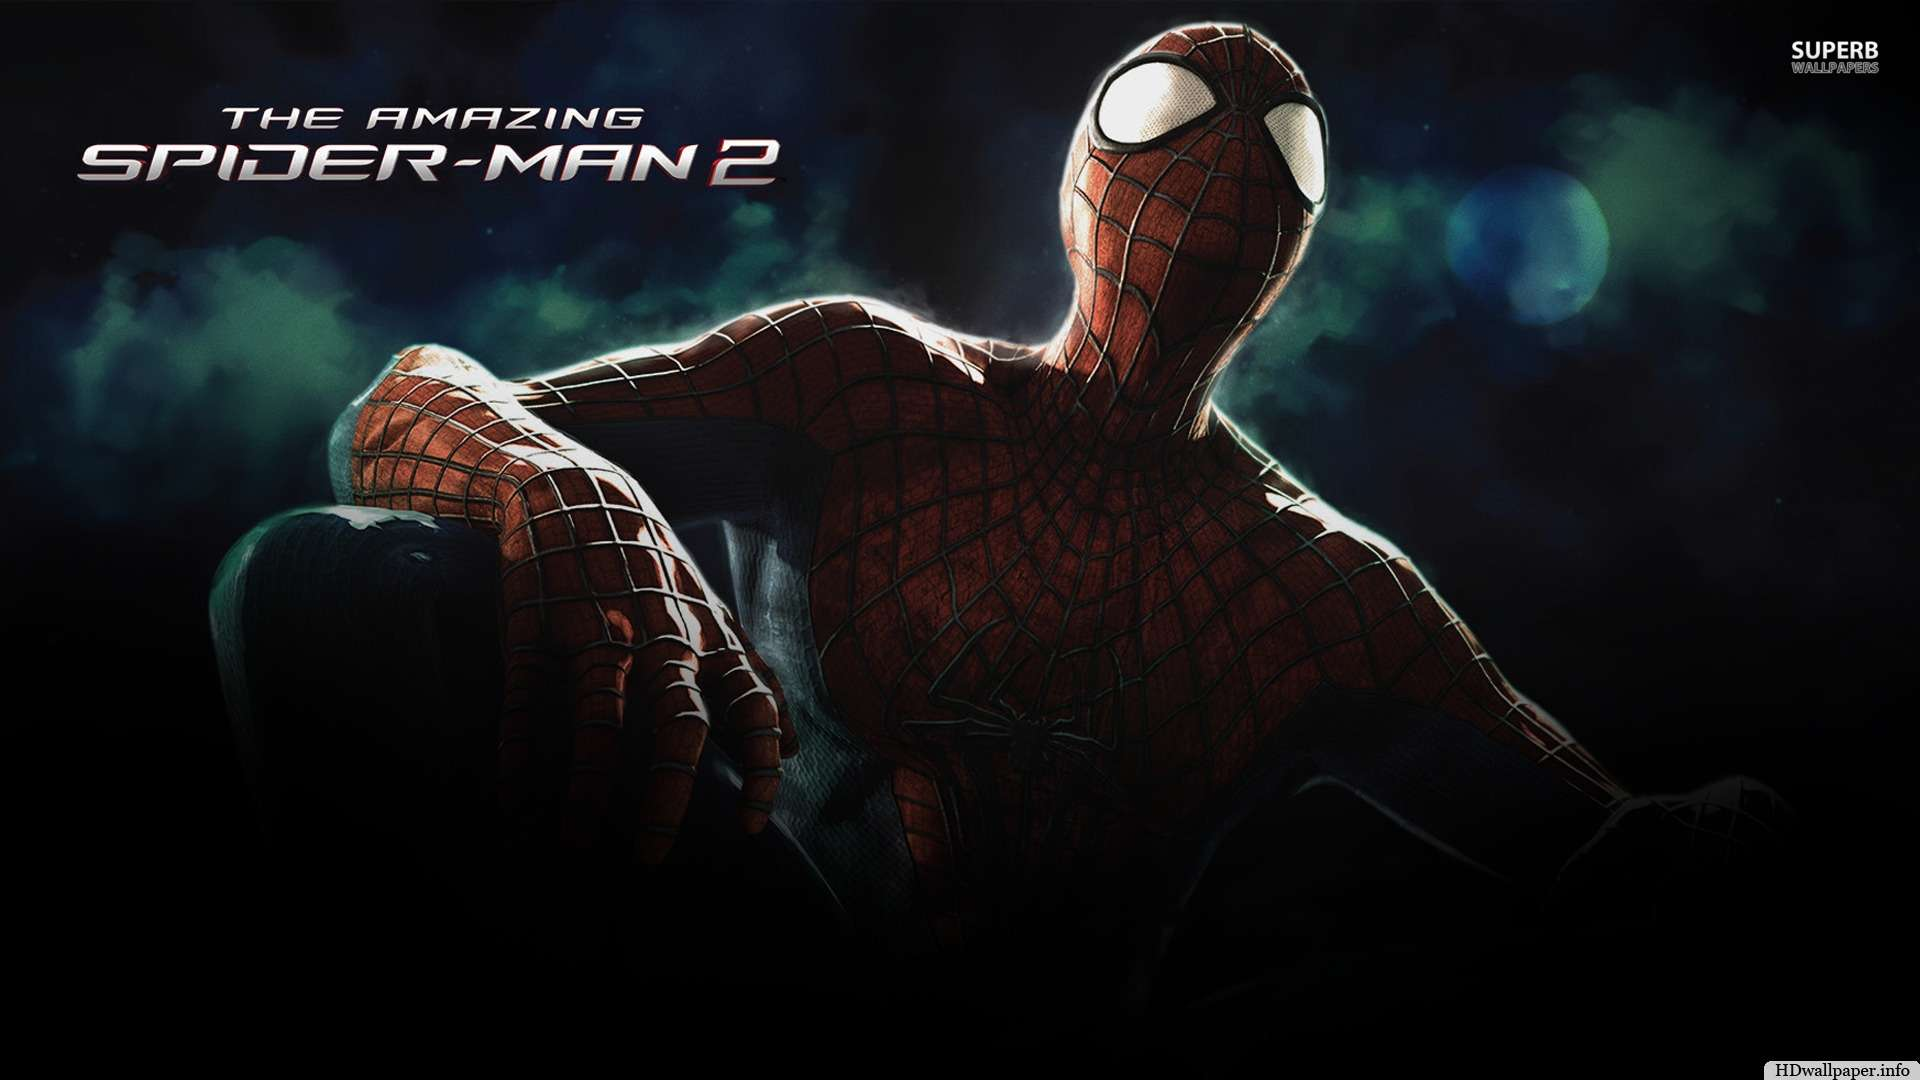 Spiderman Live Wallpaper Hd: HD Amazing Spider Man 2 Wallpapers (44 Wallpapers